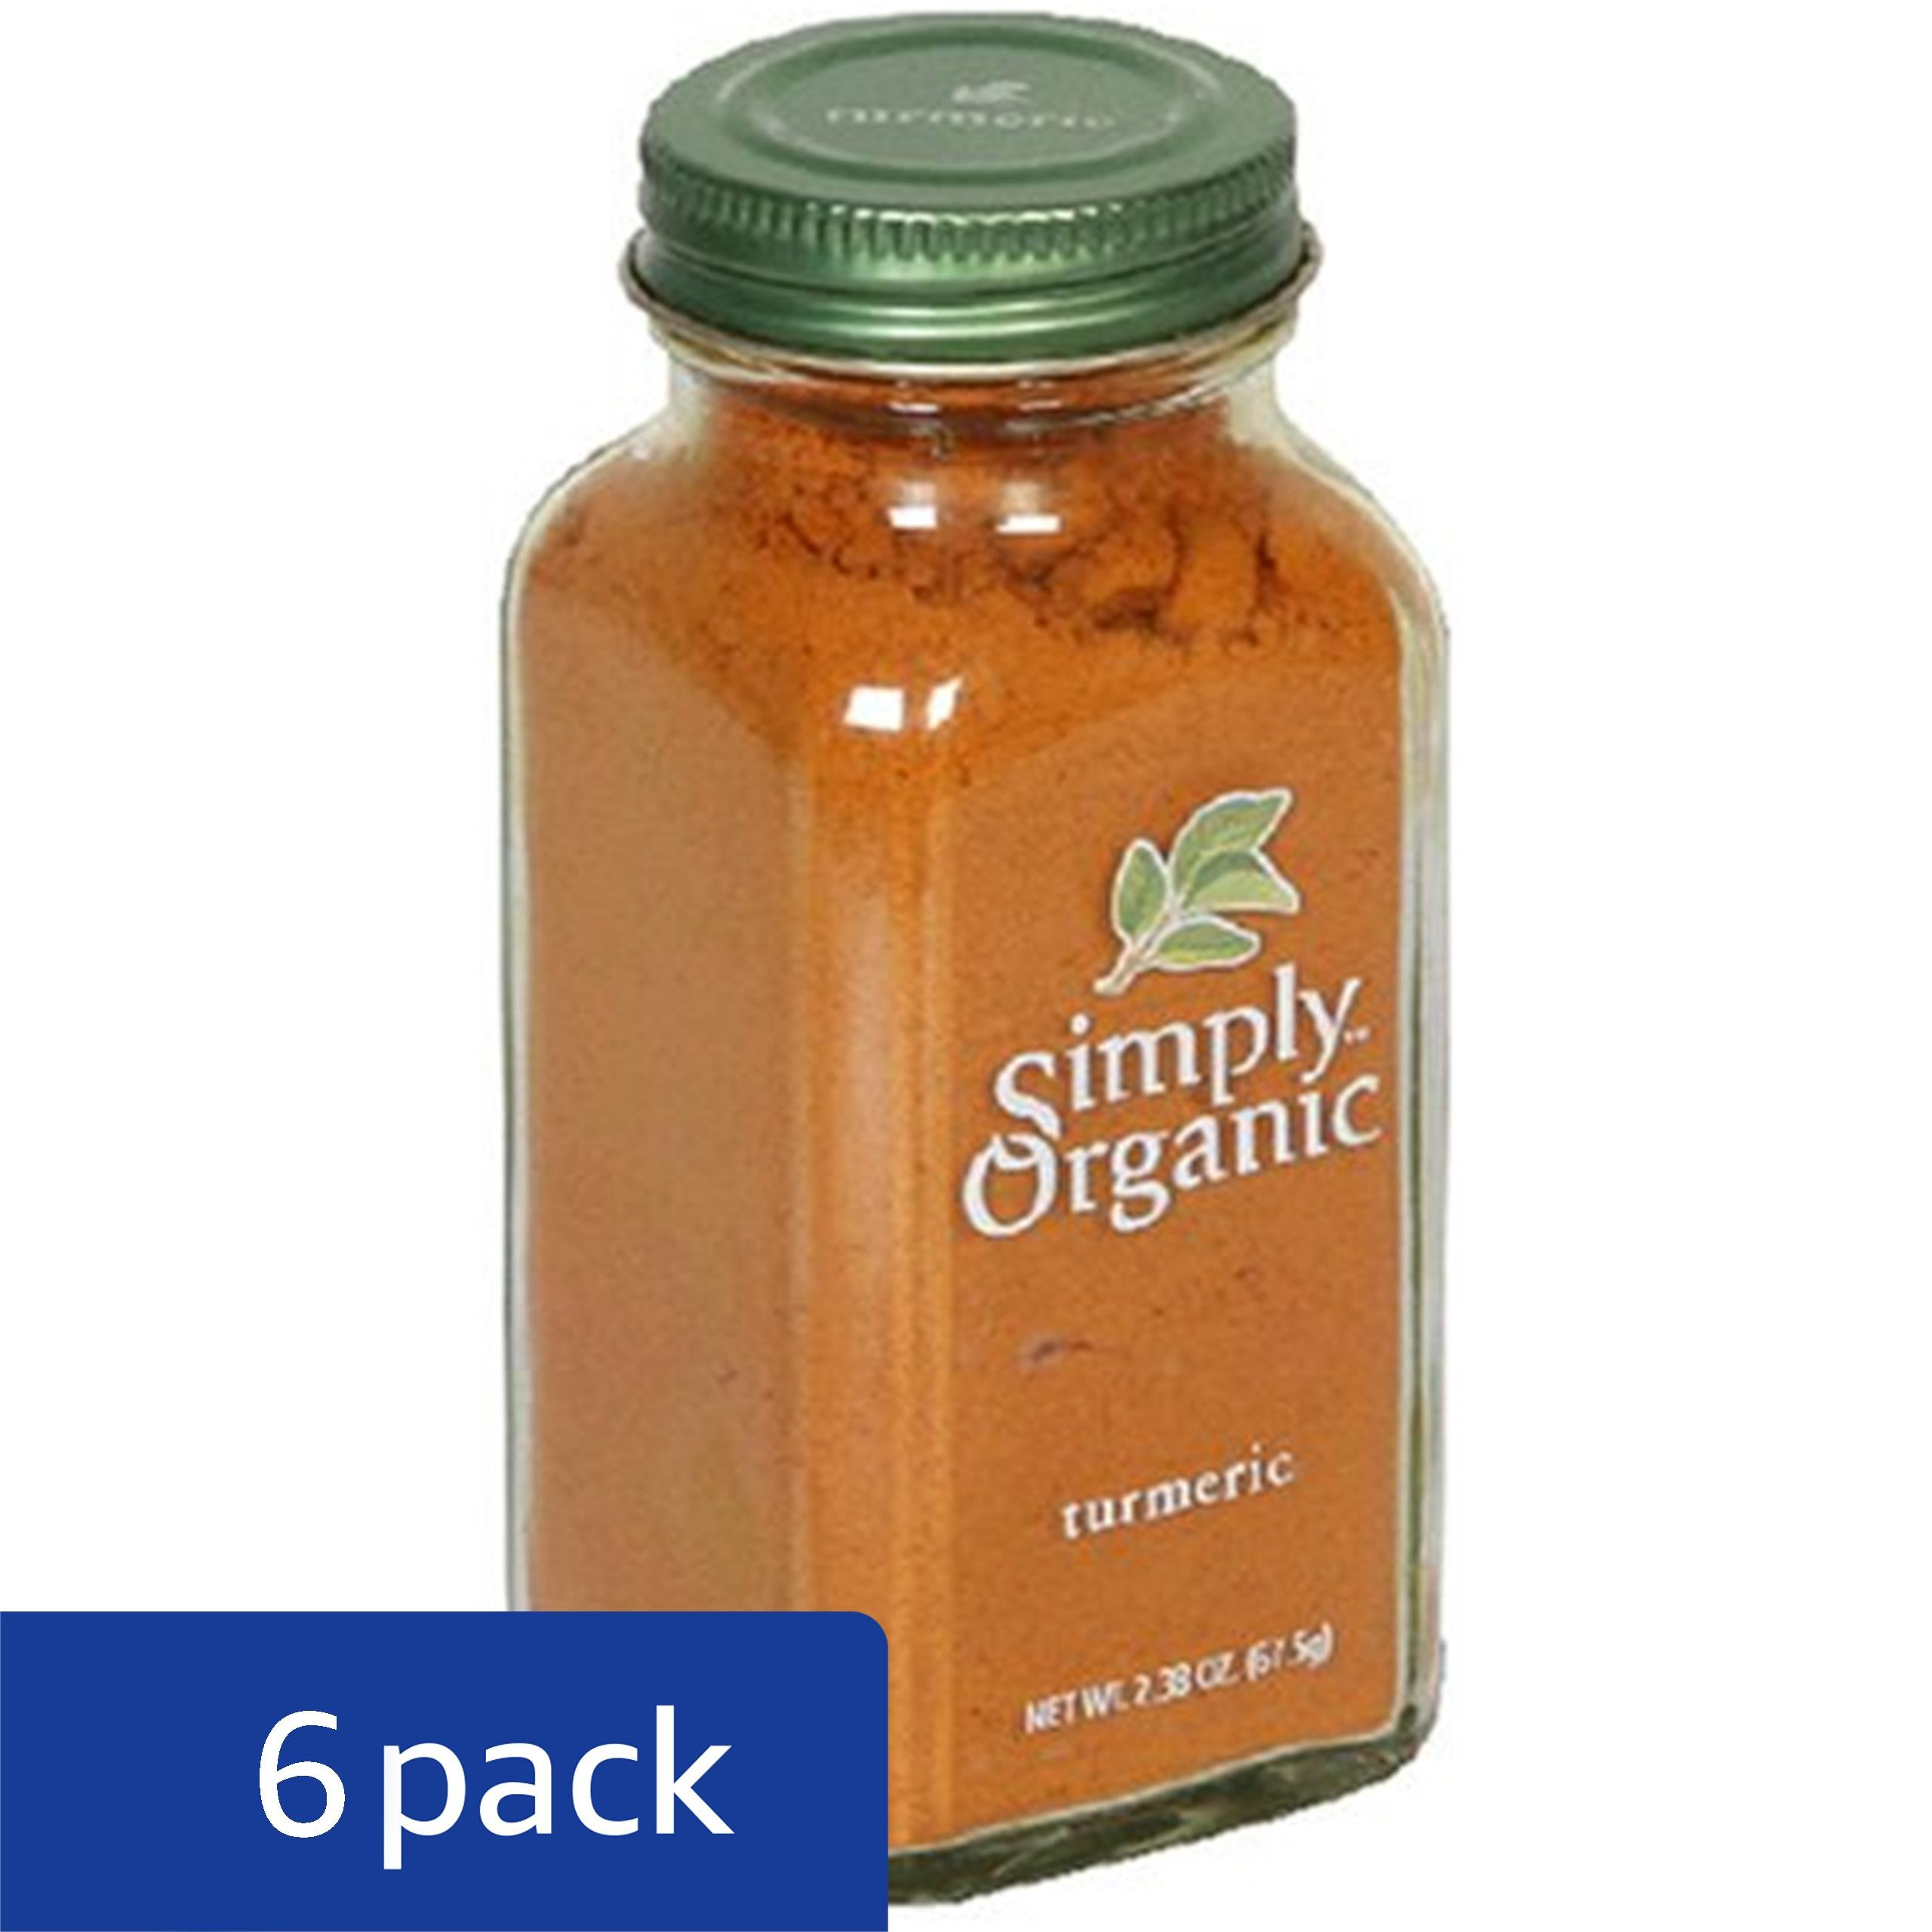 Simply Organic Turmeric Root Ground Certified Organic, 2.38-Ounce Containers (Pack of 6)